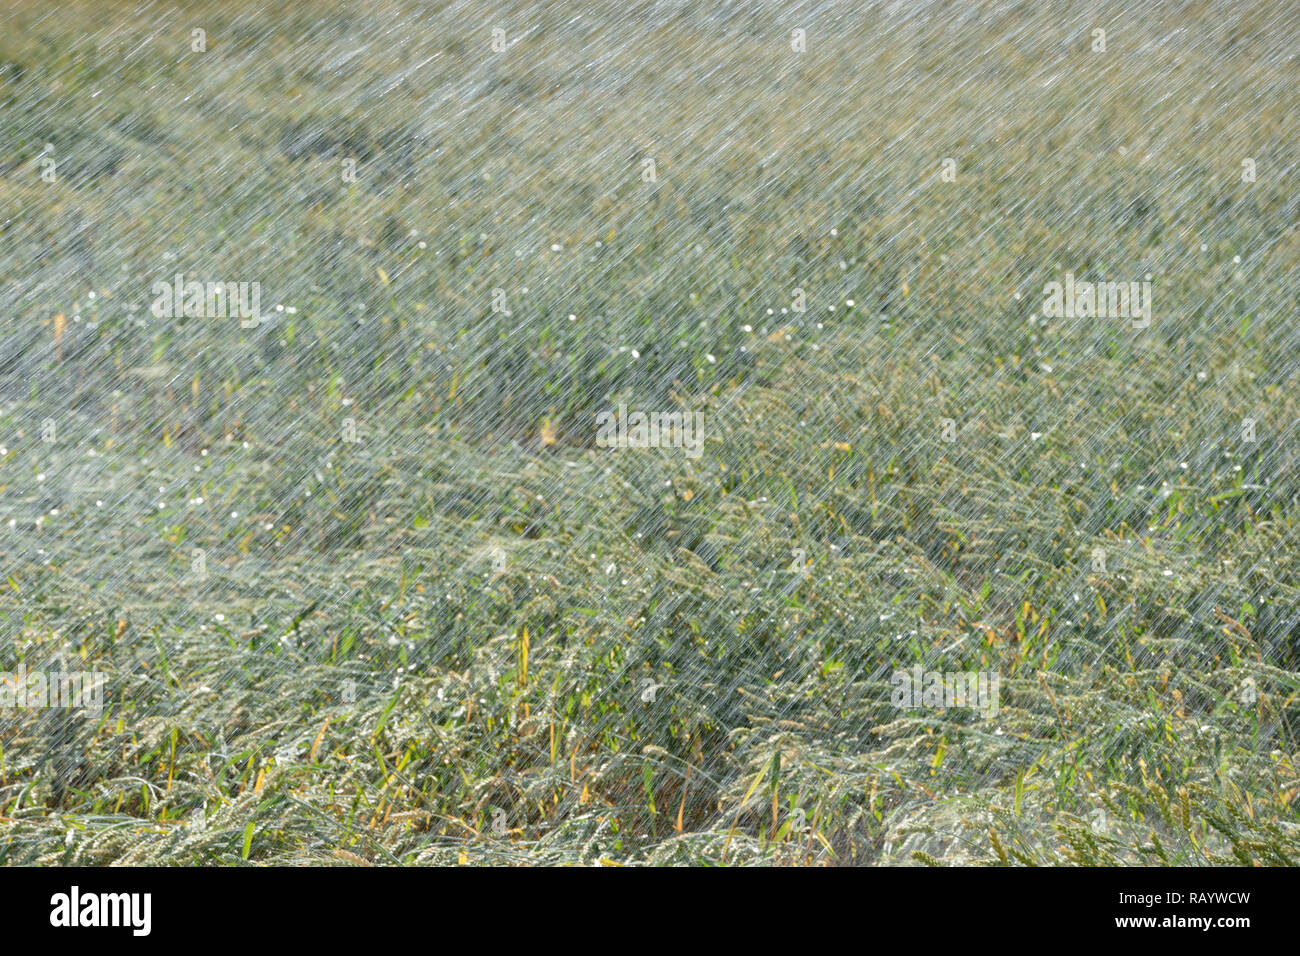 Sprinkler irrigation machine spraying water over farmland during a drought summer, watering a wheat field. - Stock Image